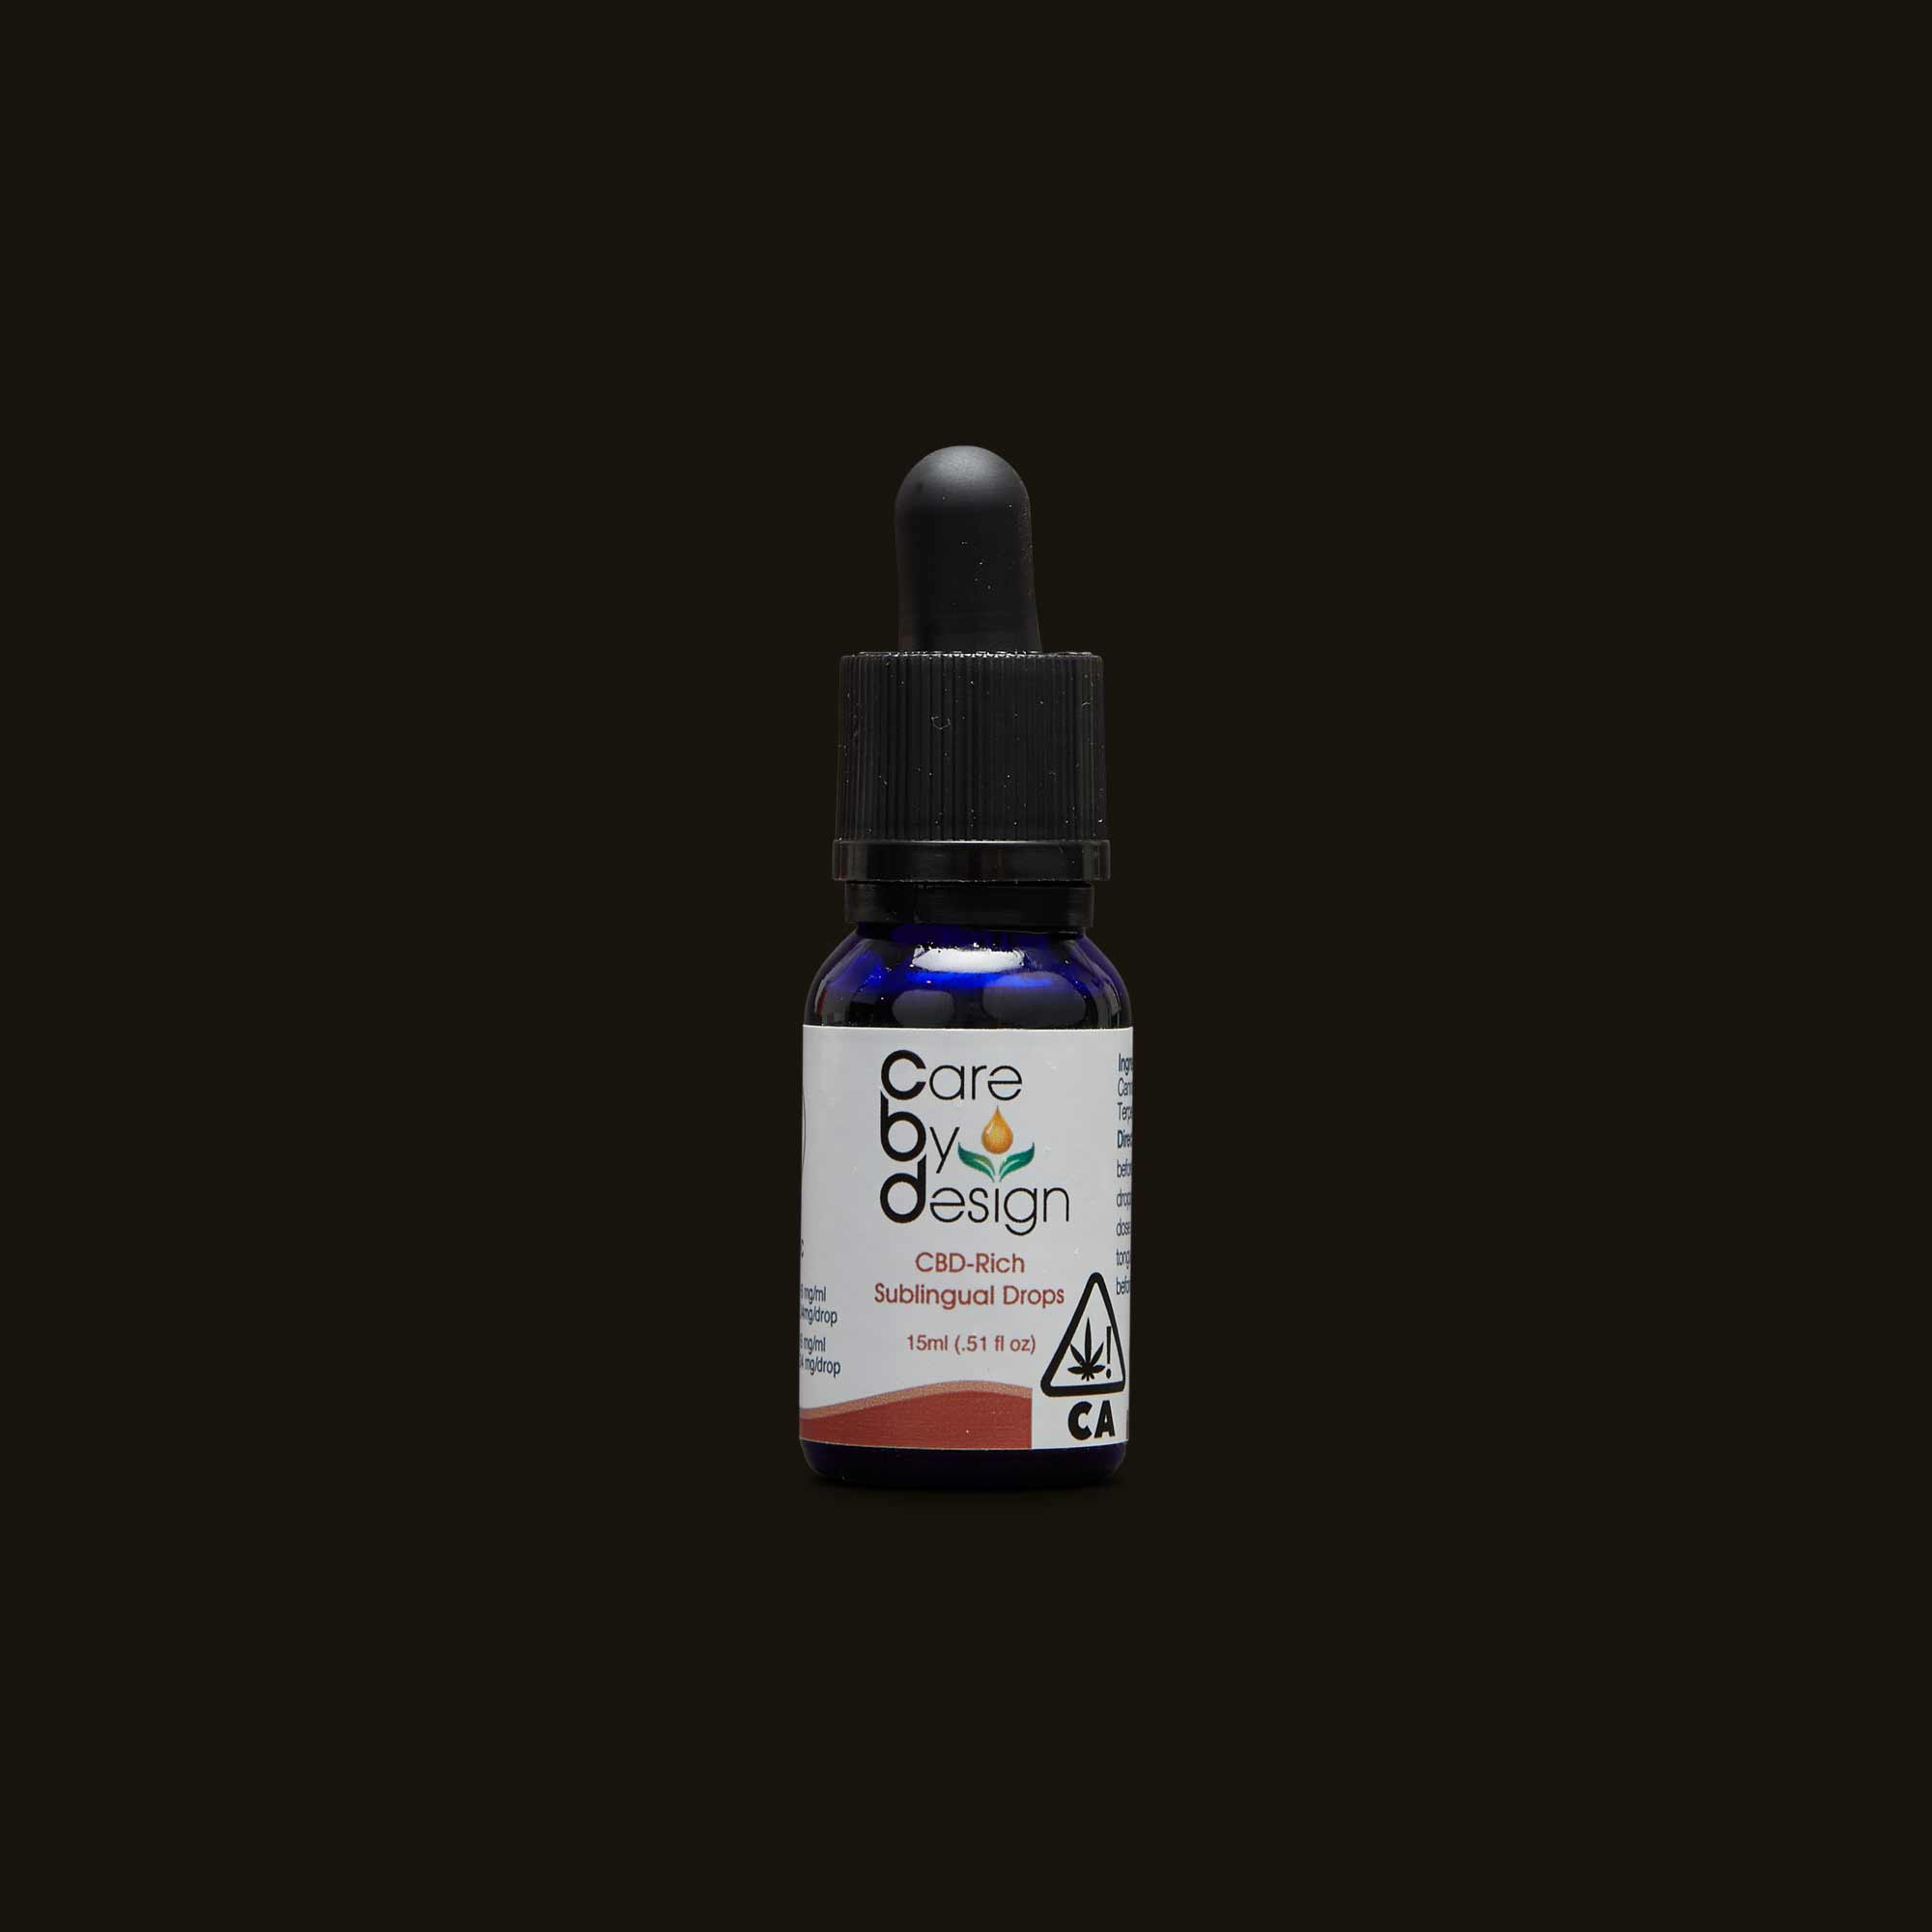 Care By Design 1:1 Sublingual Drops